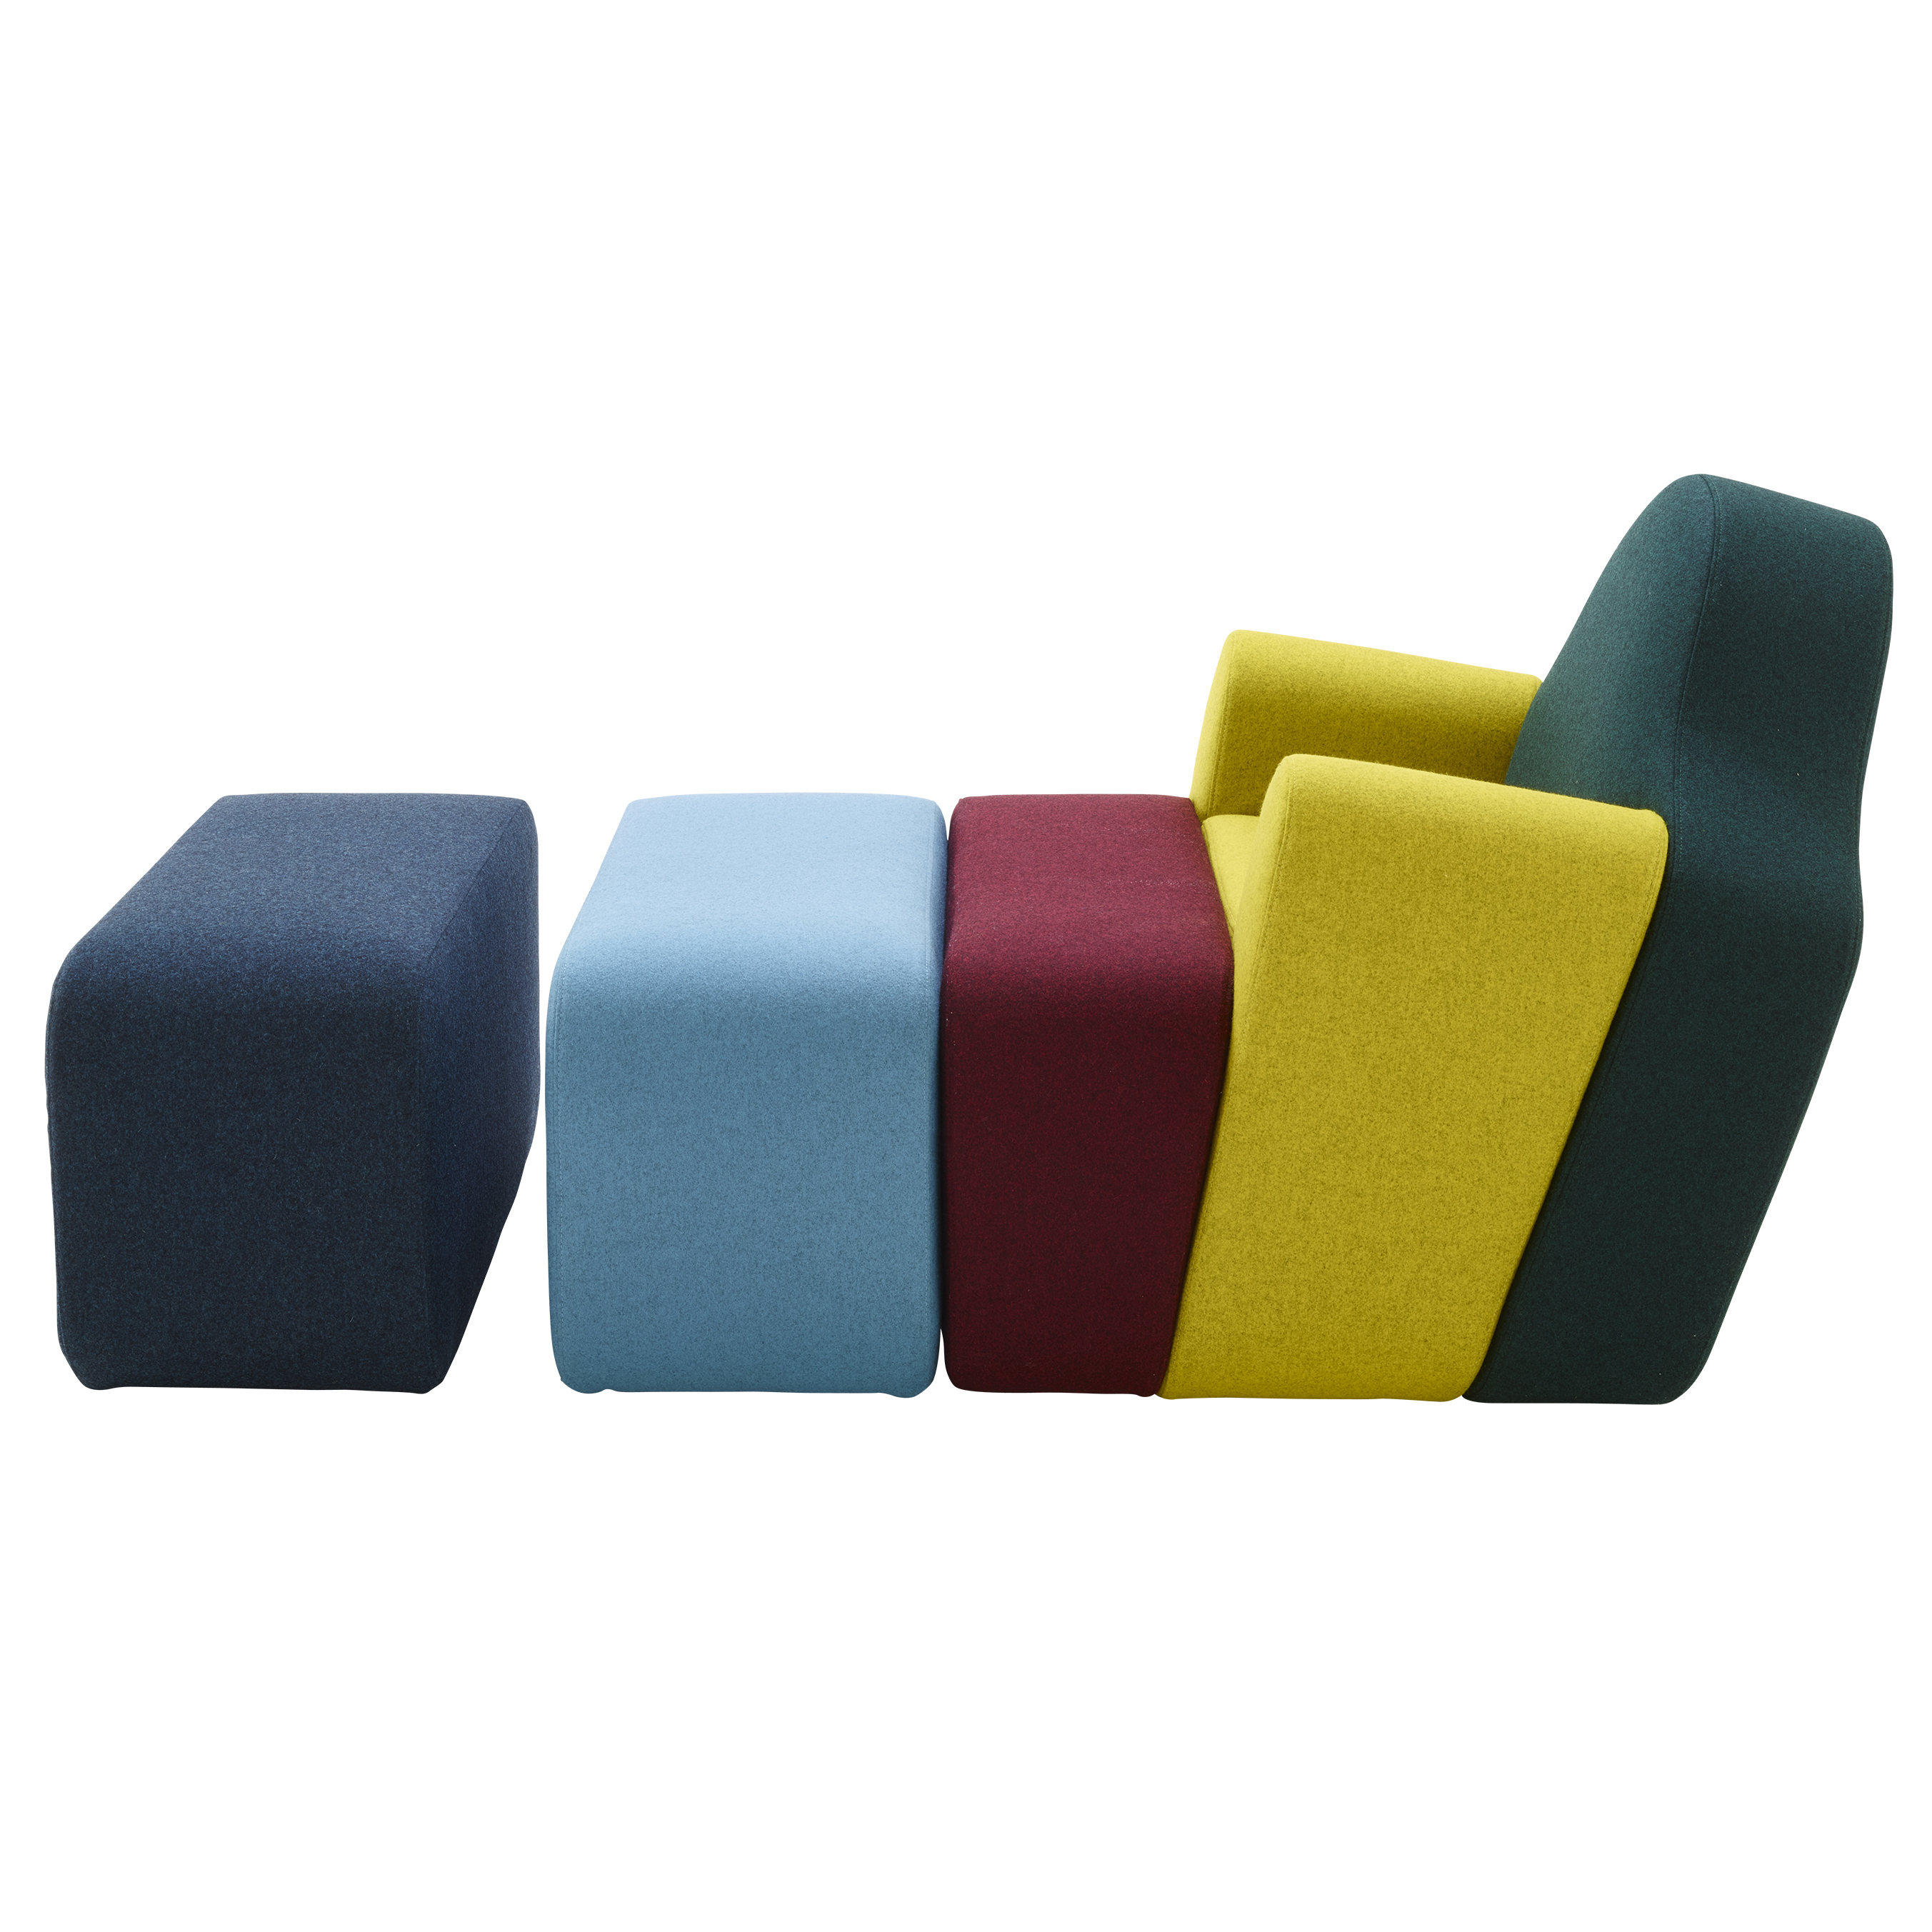 Pierre Charpin's Slice chair for Cinna is split up into blocks